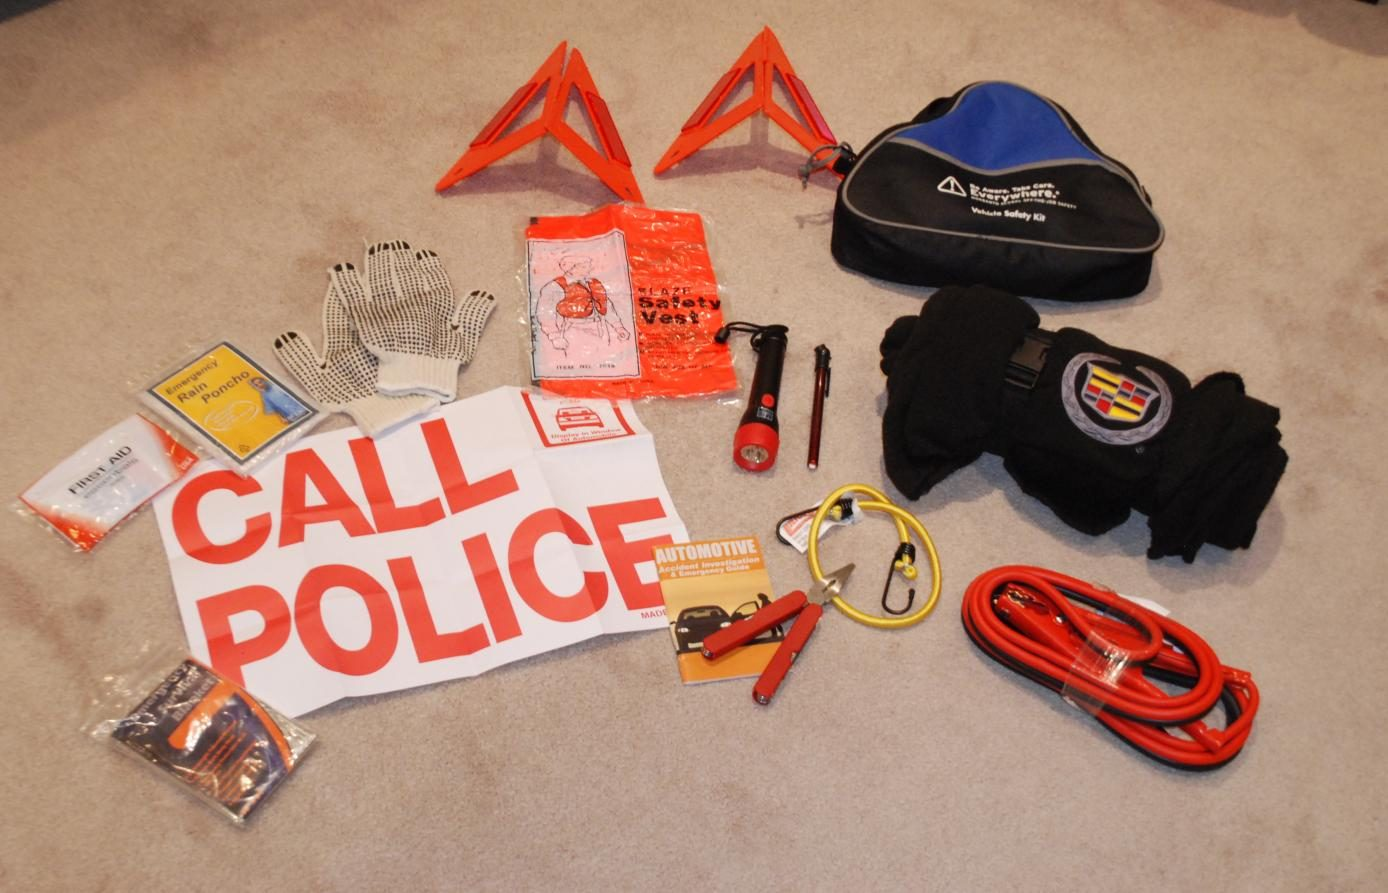 """An example of a pre-made emergency kit. Items included are jumper cables, a bungee cord, a multipurpose tool, a blanket, a safety vest, a pair of gloves, reflective cones, a """"Call Police"""" sign, a small booklet for car care, a poncho, a first aid kit, and another emergency blanket."""